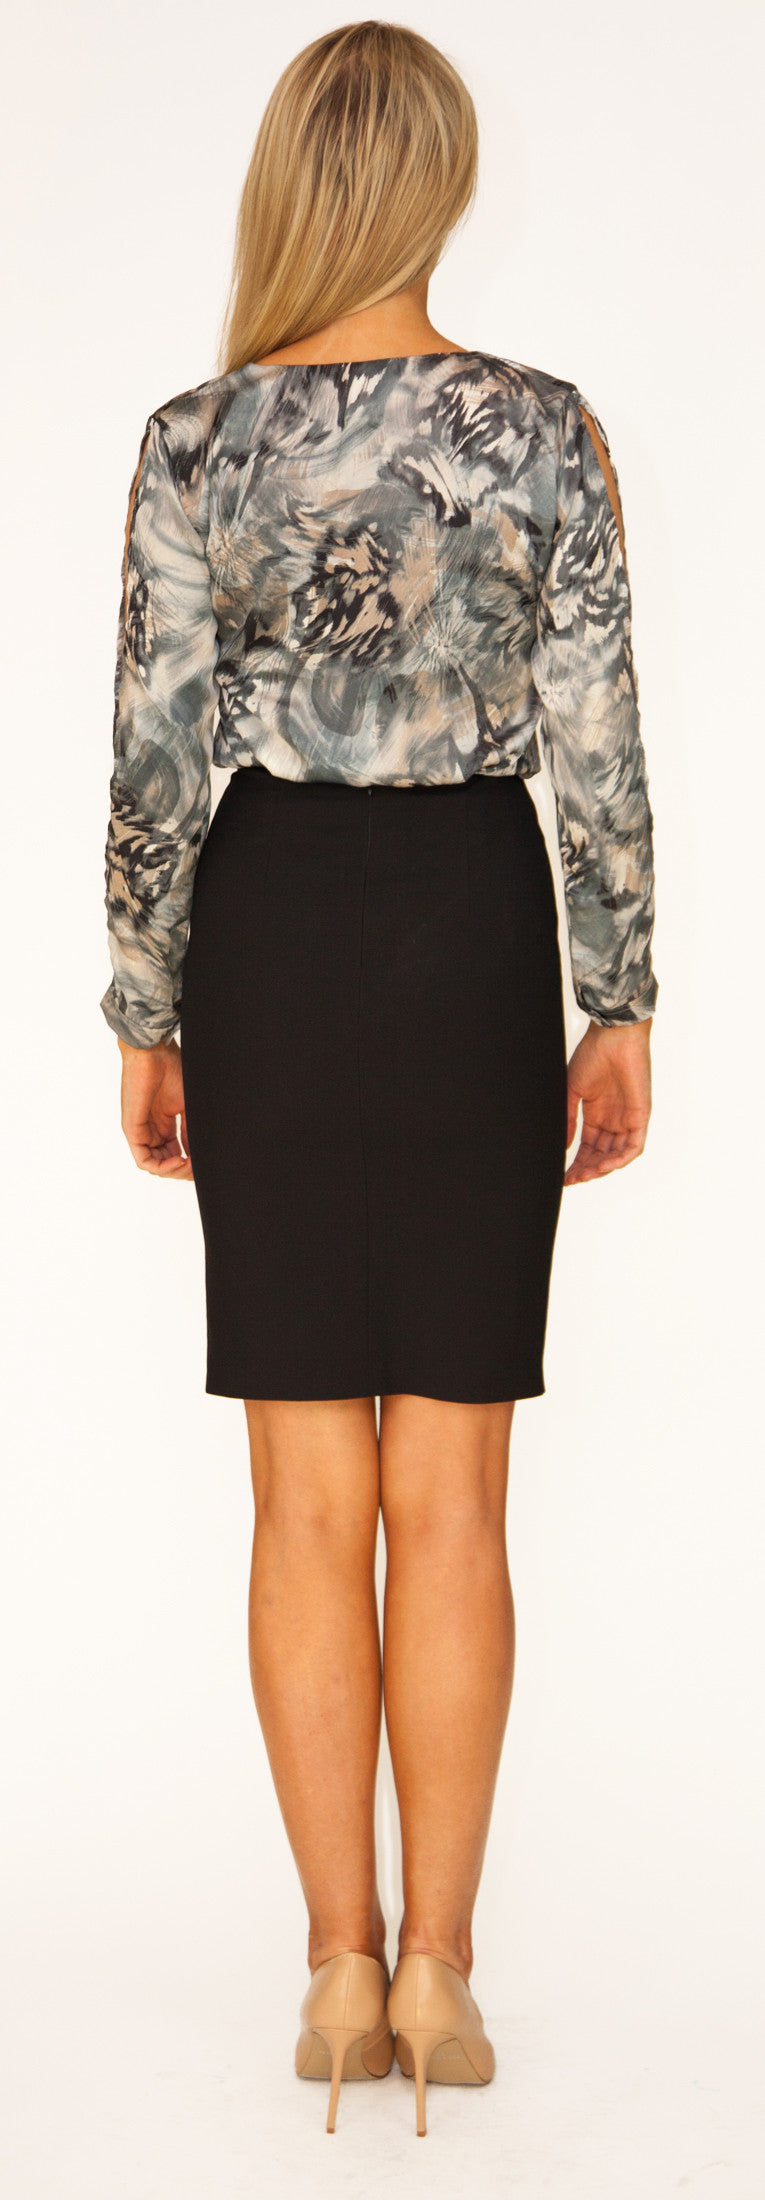 The More Pencil Skirt